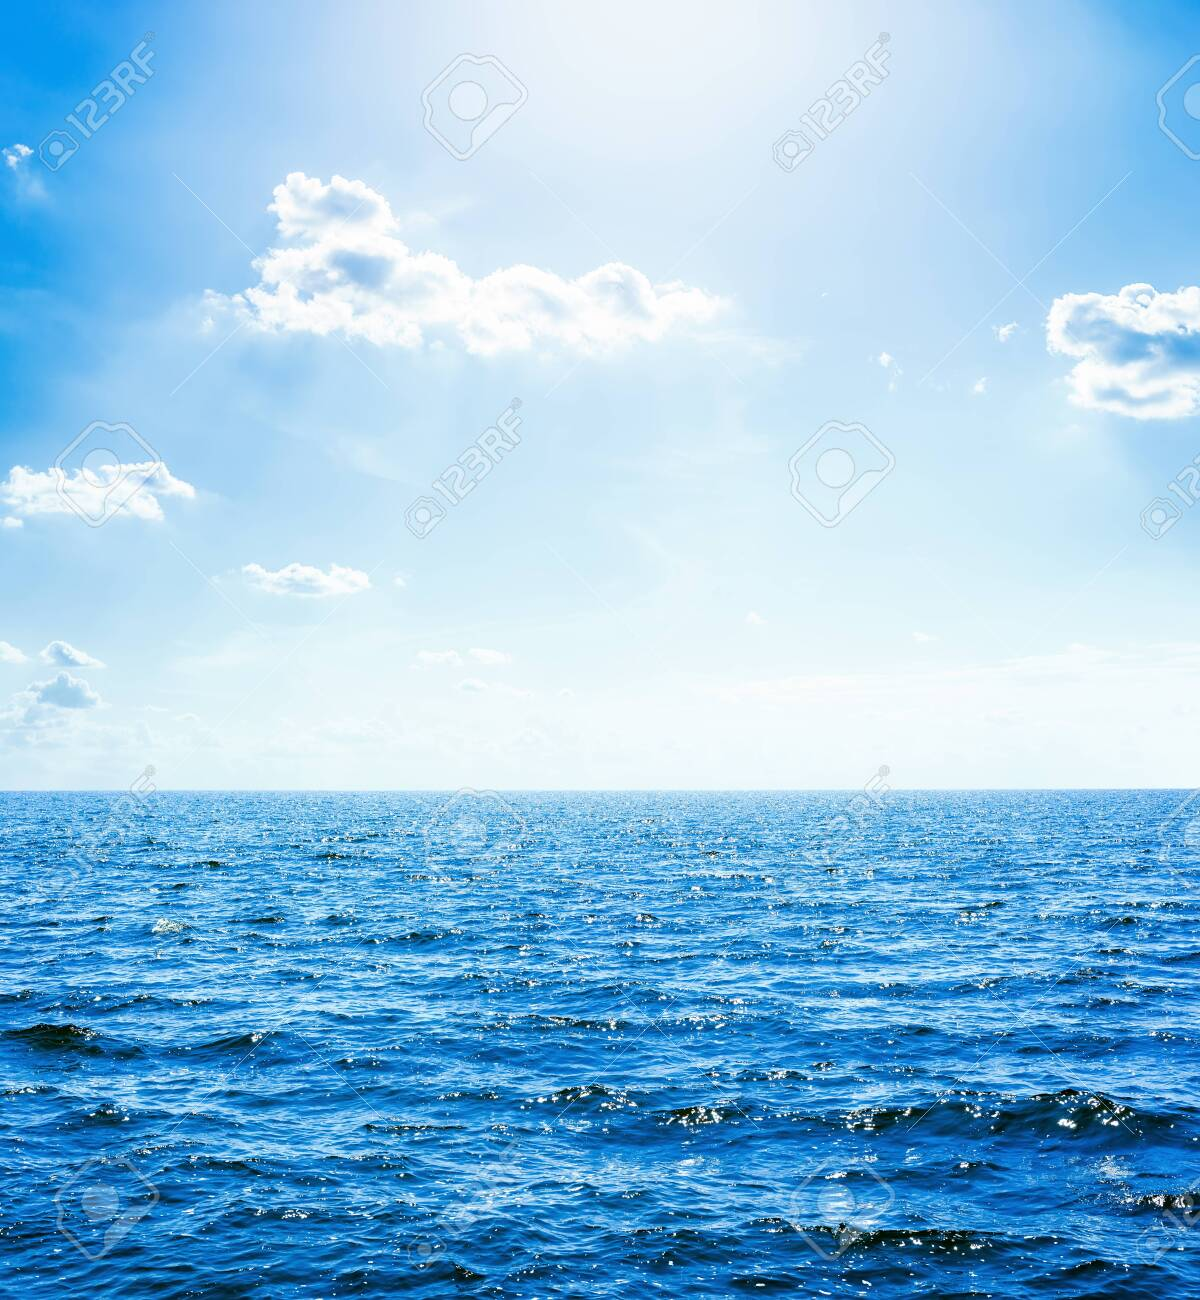 deep blue water in sea and sun with clouds in sky - 129736186